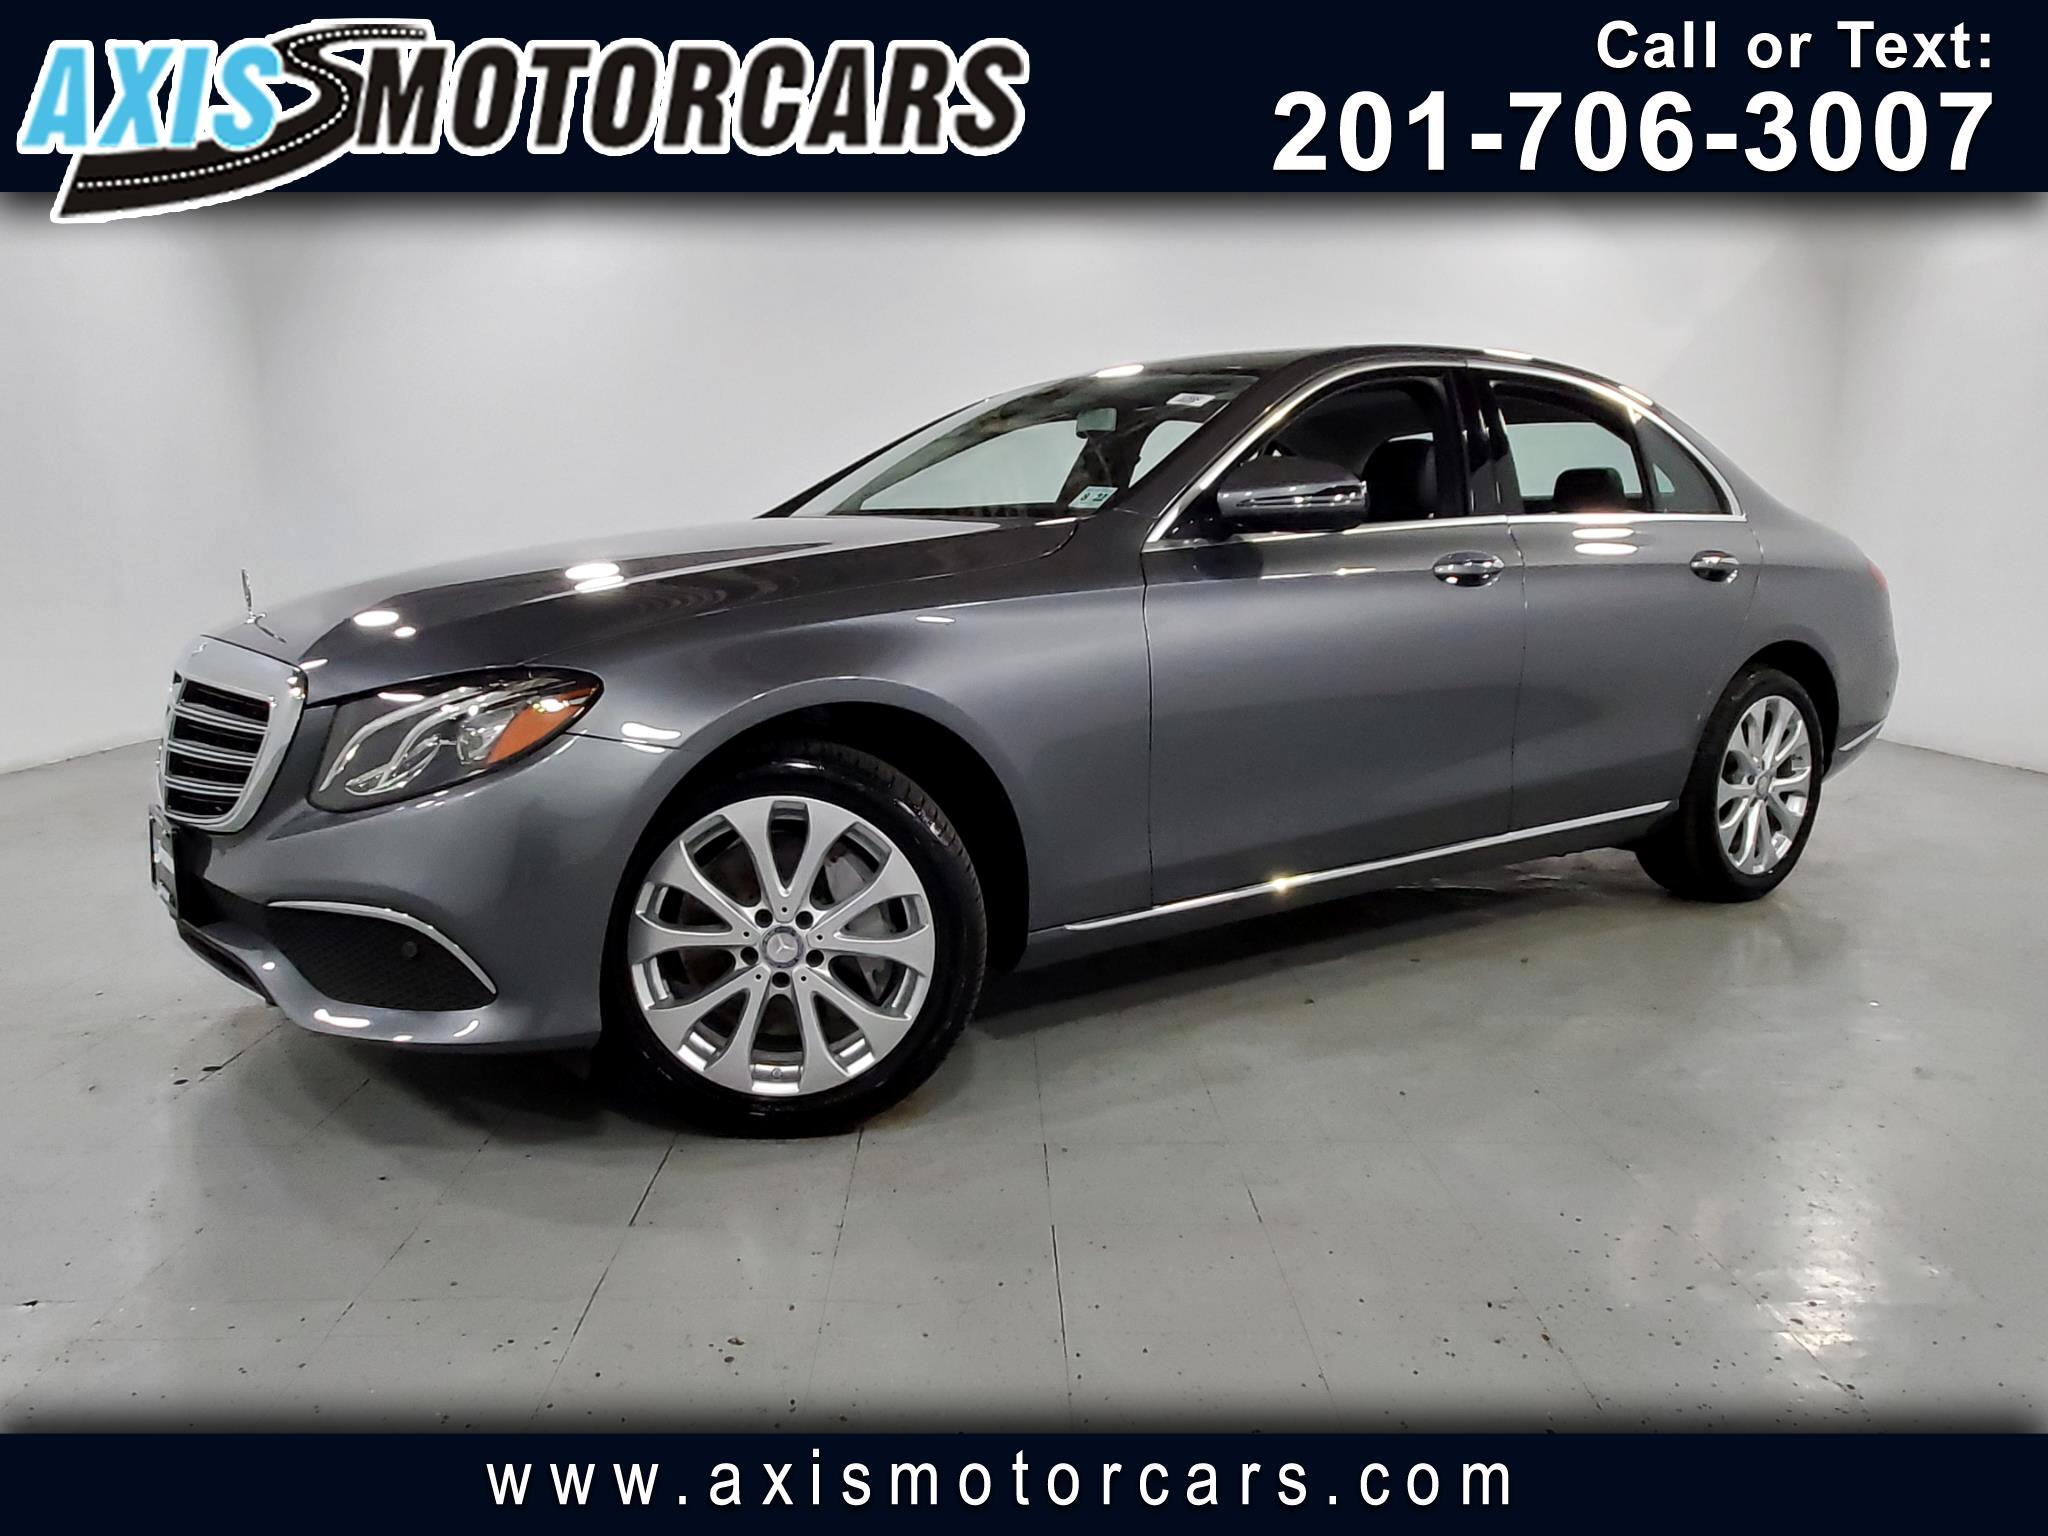 2017 Mercedes-Benz E300 w/Burmester Sound System Navigation Backup Camera